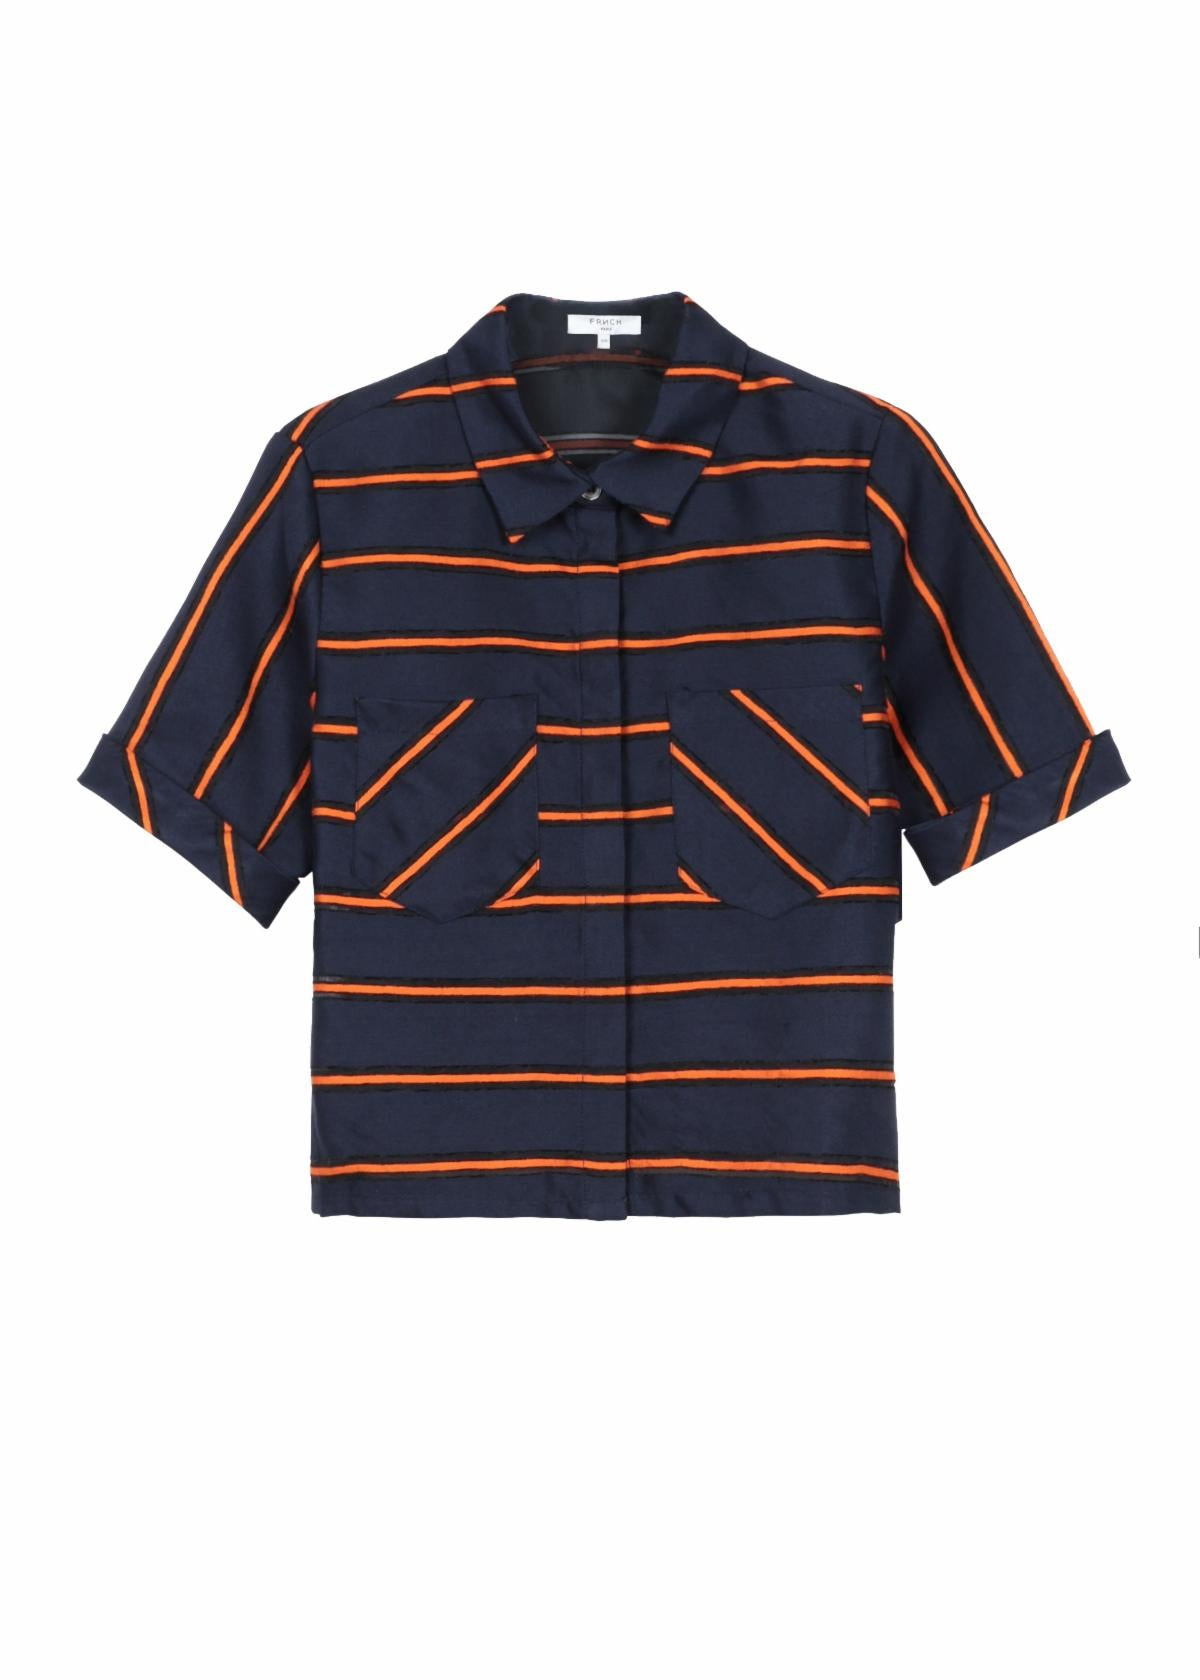 Cyprila Stripe Shirt - Coveted Style